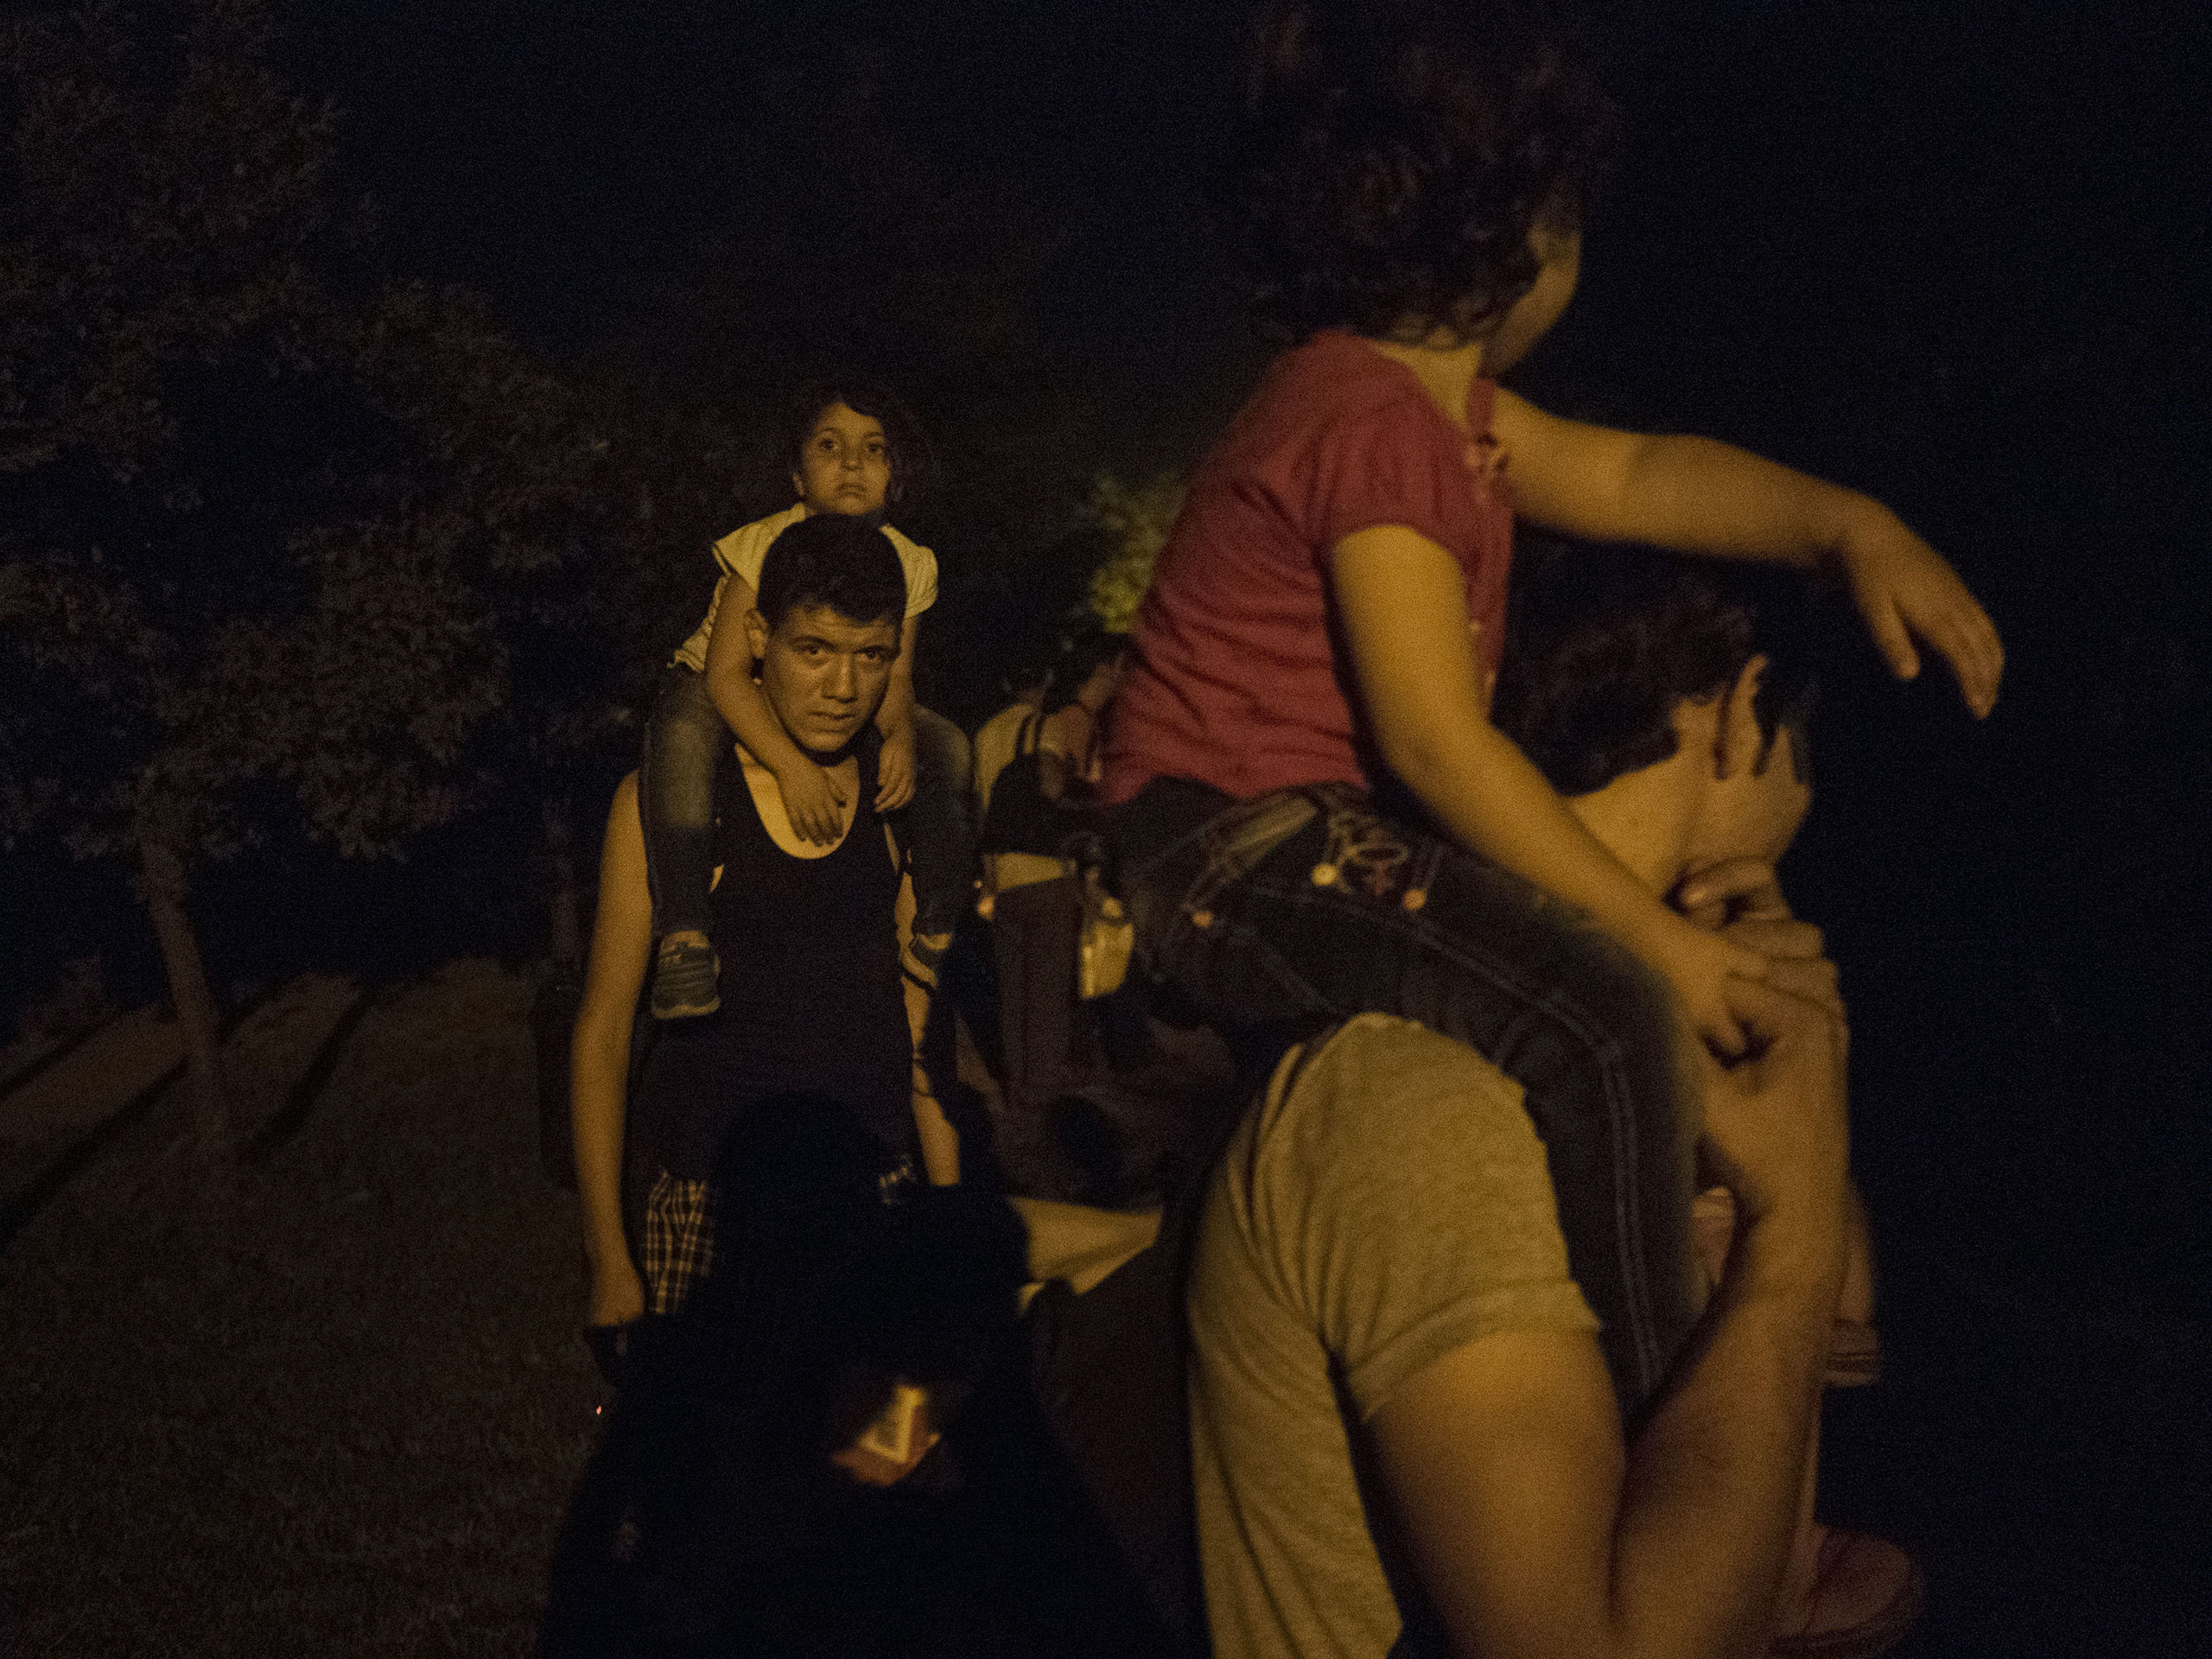 Horgos, Serbia. August 12, 2015. Syrian families walk at night toward the border to attempt to cross it.